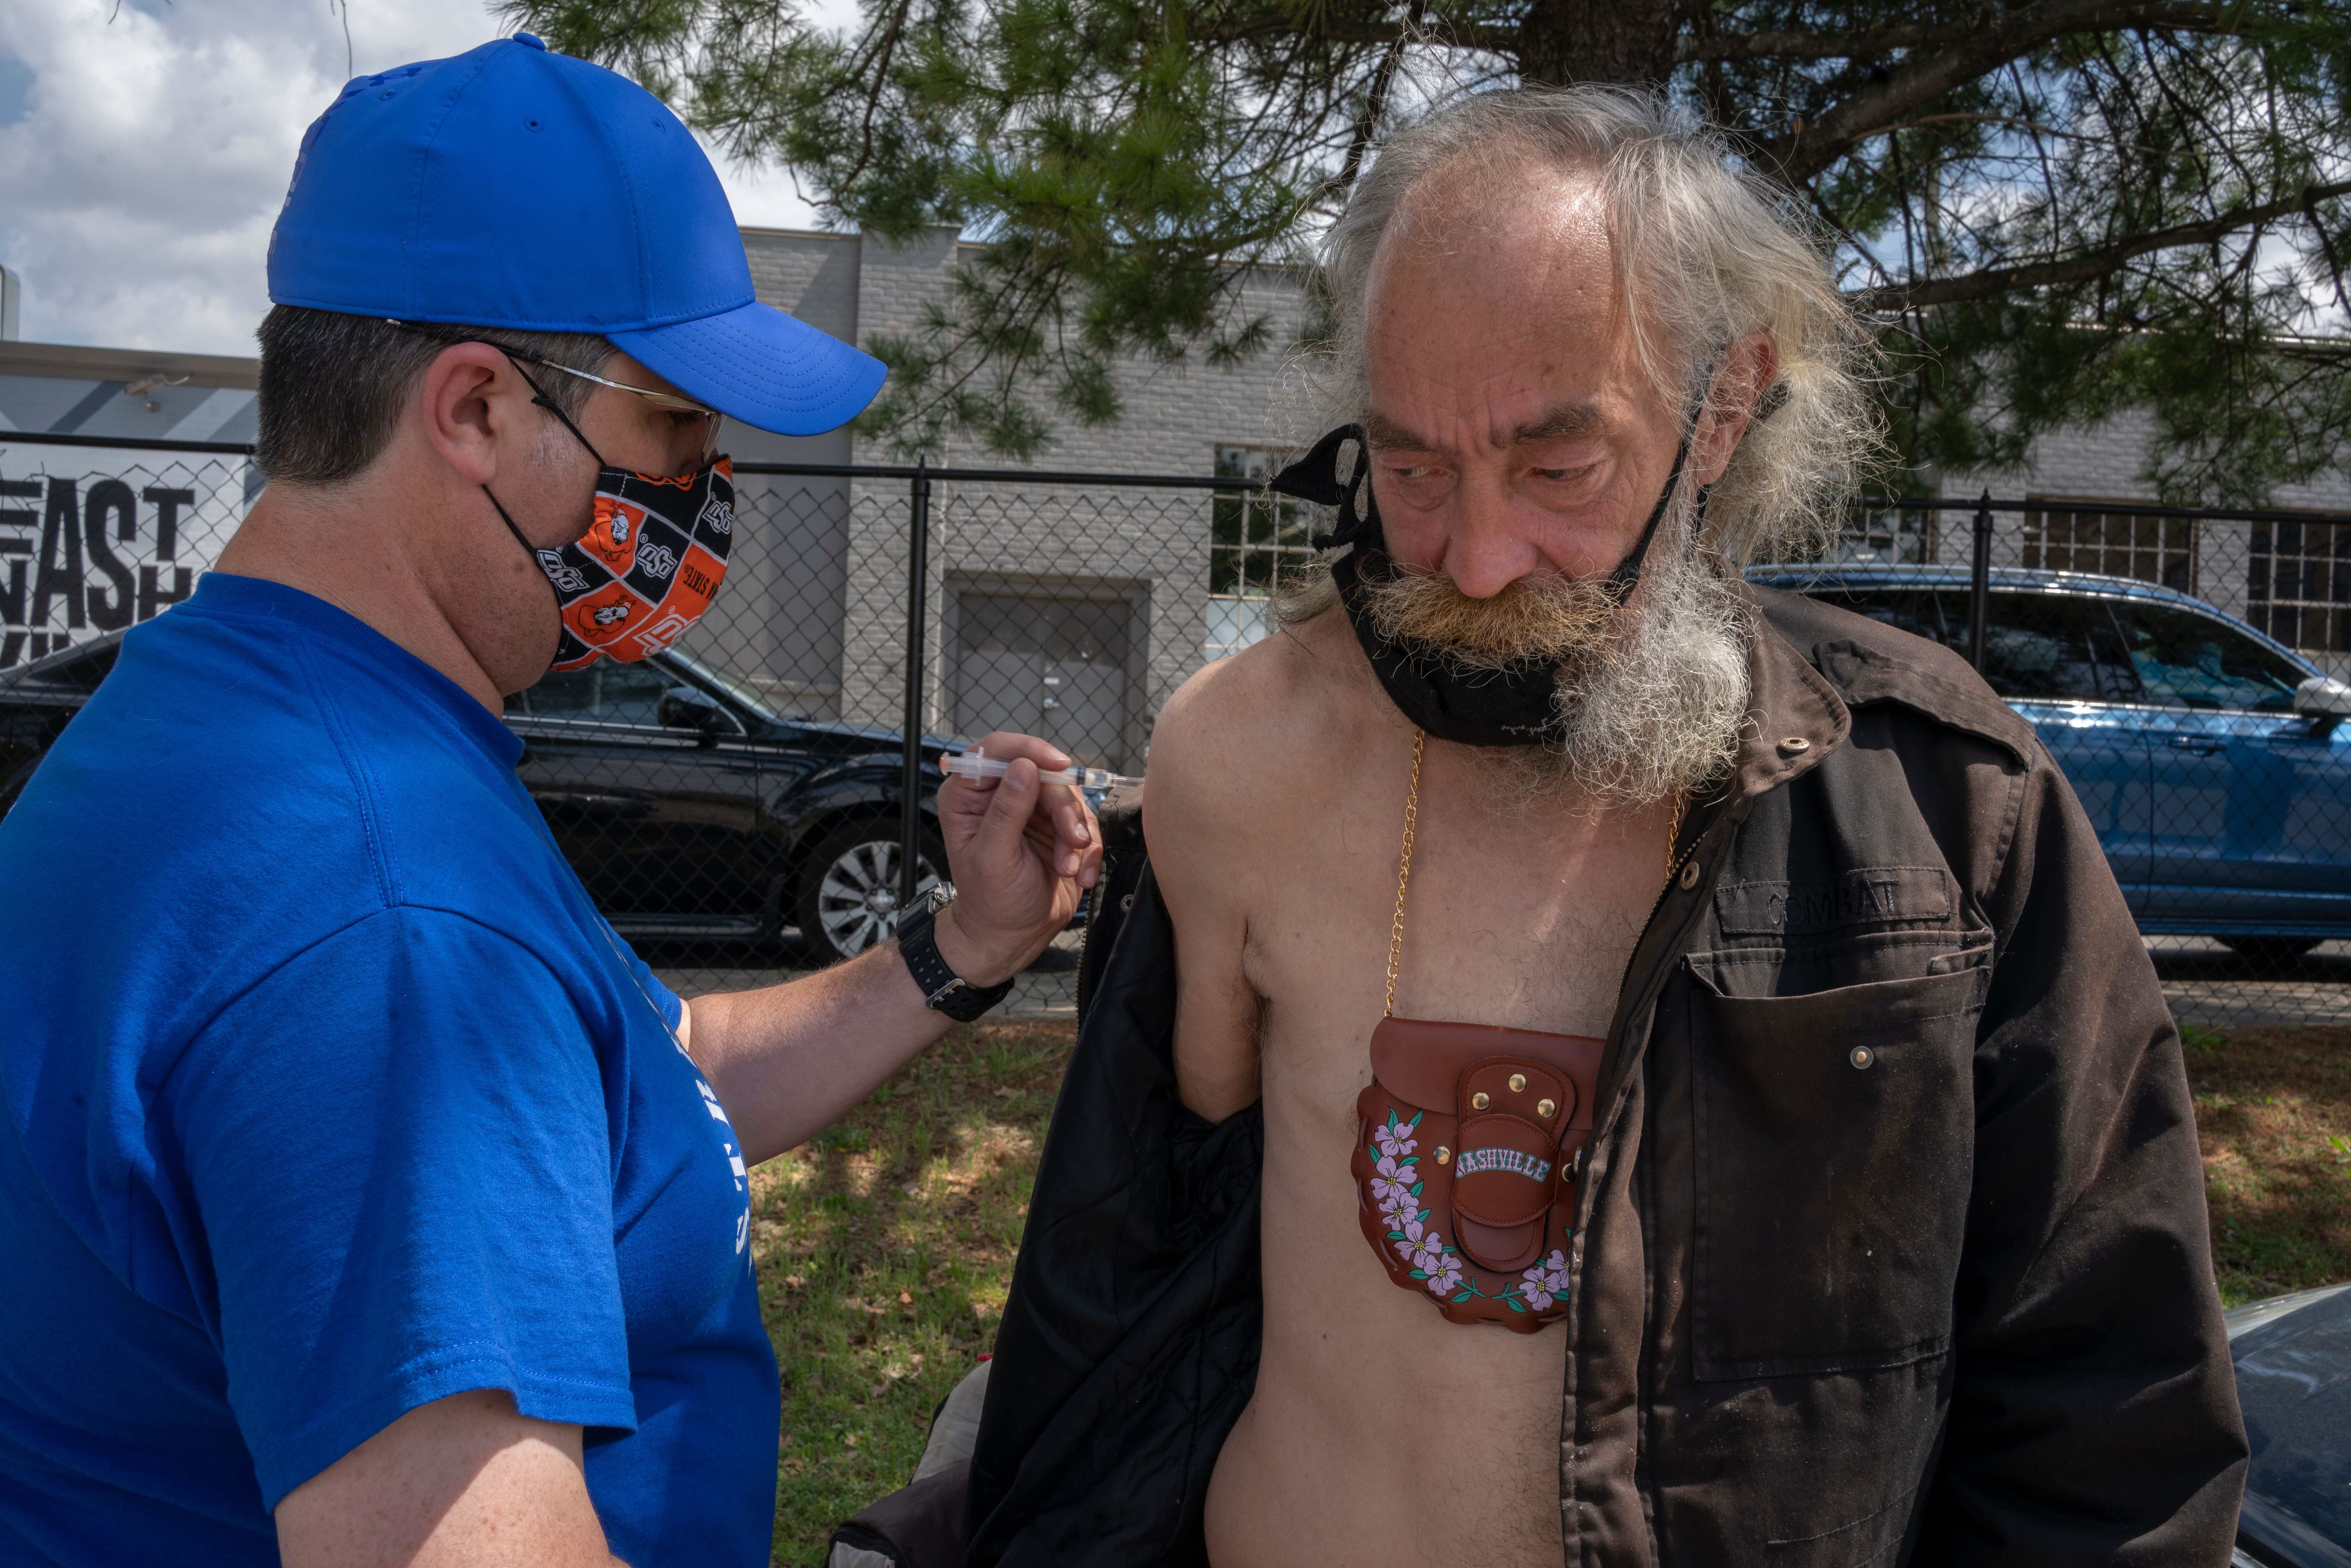 Homeless man Steve Nelson get his Johnson and Johnson vaccine from RN Jeremy McCraw of Neighborhood Health in the parking lot of Holy name Church. (Photo: John Partipilo)